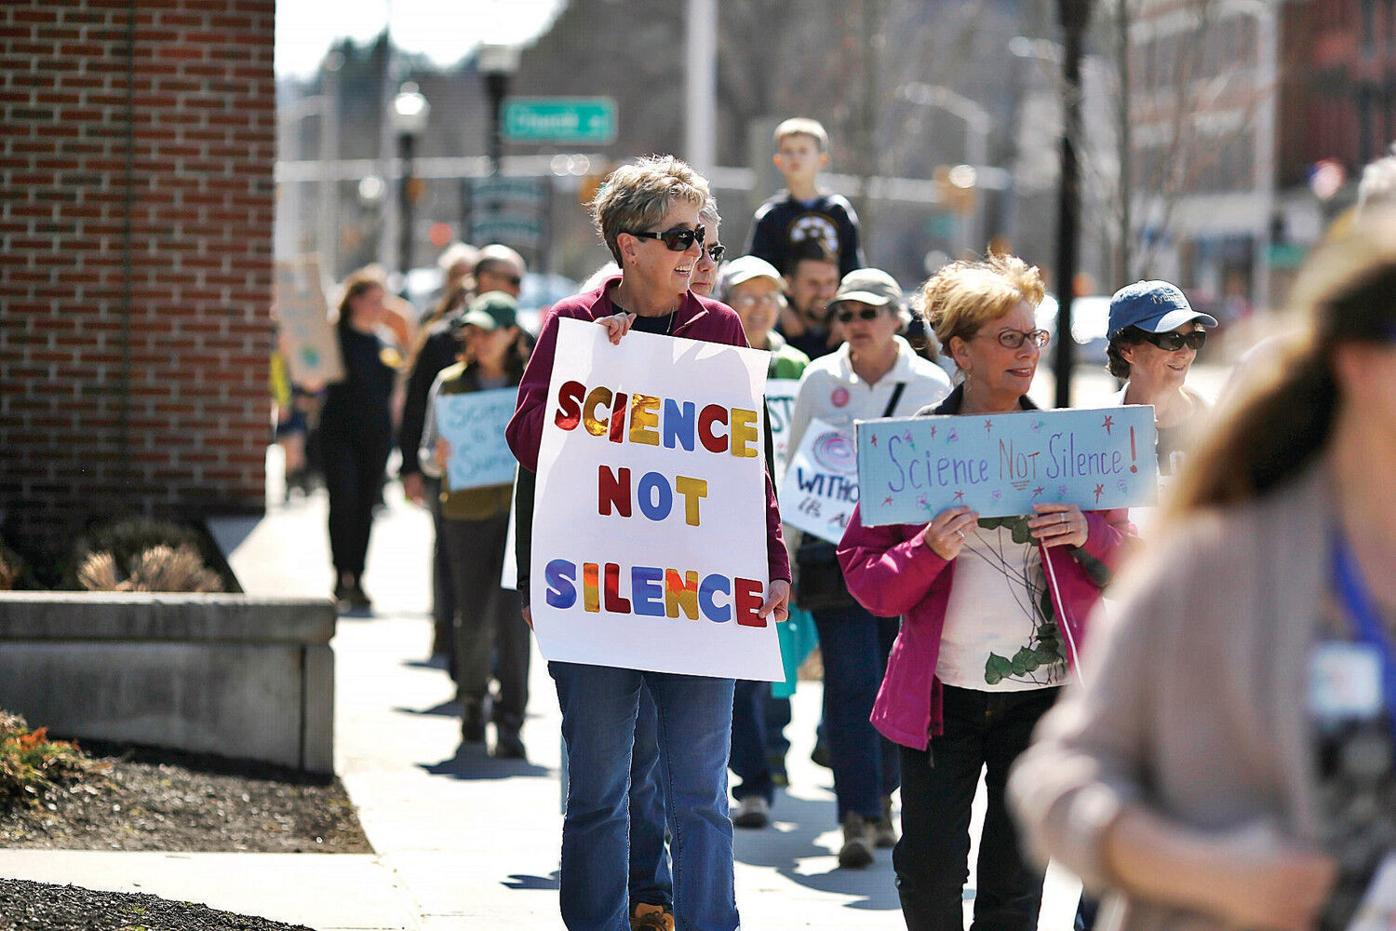 At River Walk march, participants matter-of-fact in their beliefs on science